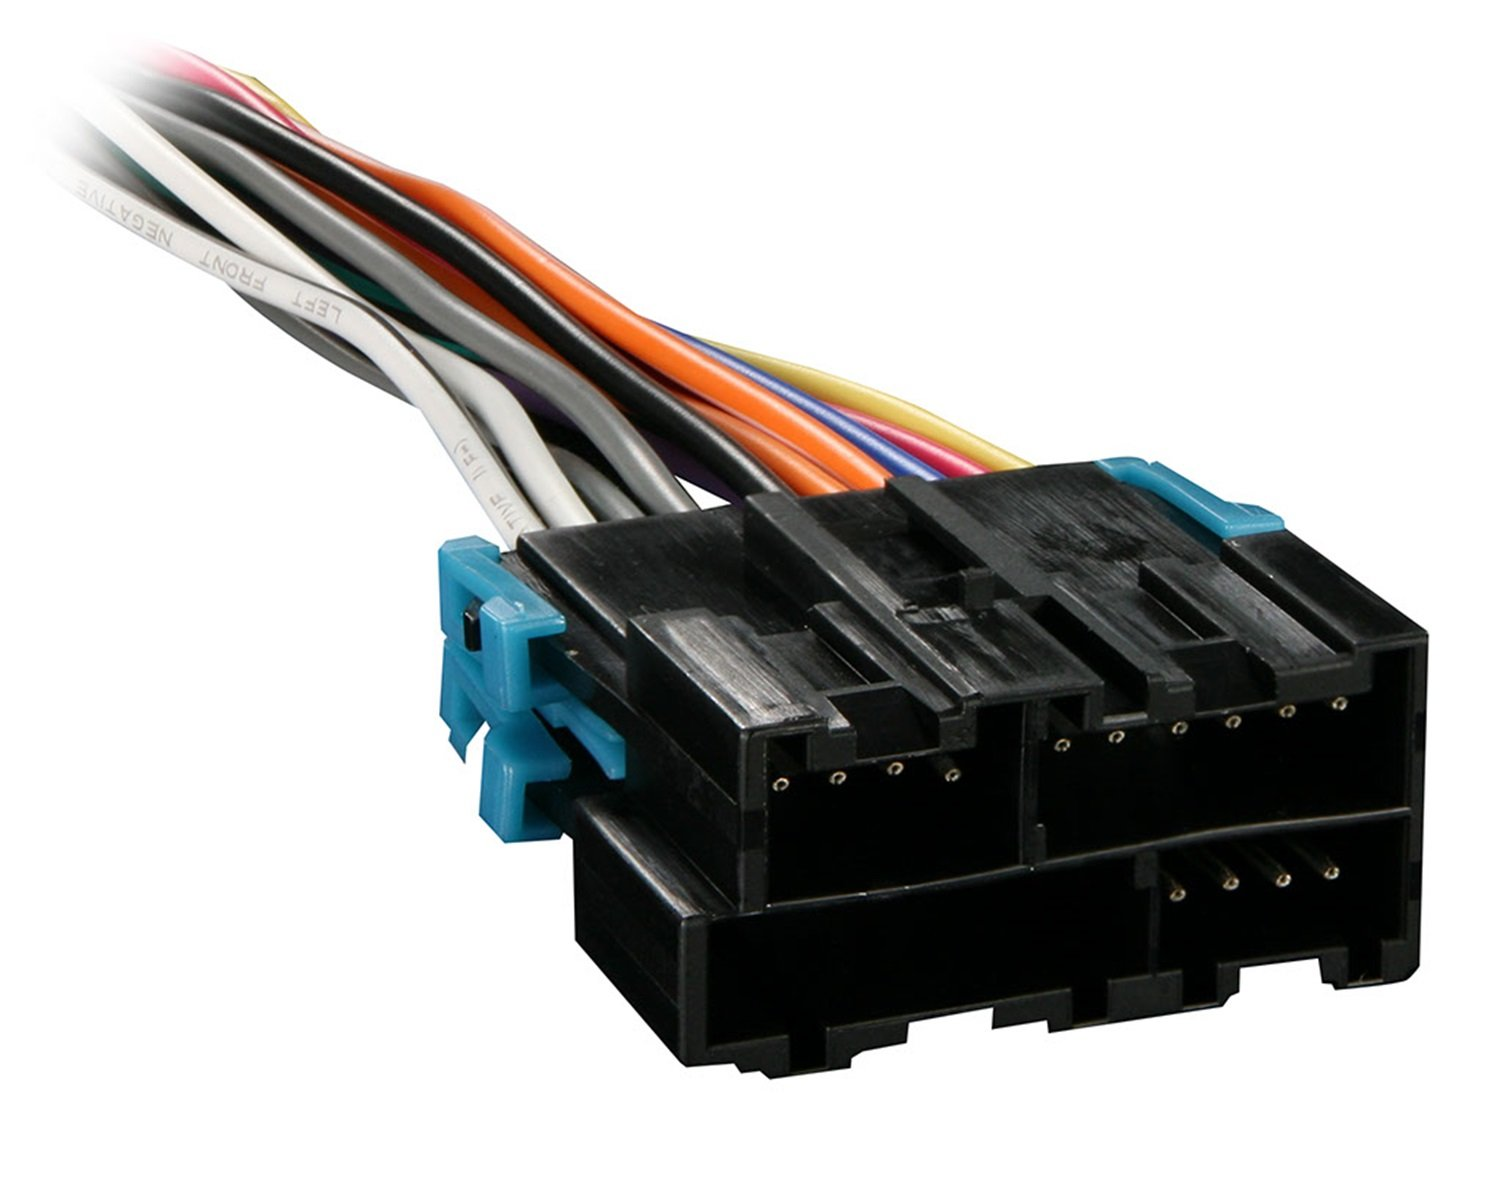 61 CwjZt1hL._SL1500_ radio wiring harnesses amazon com Pioneer Deh P77DH Wiring Harness at couponss.co